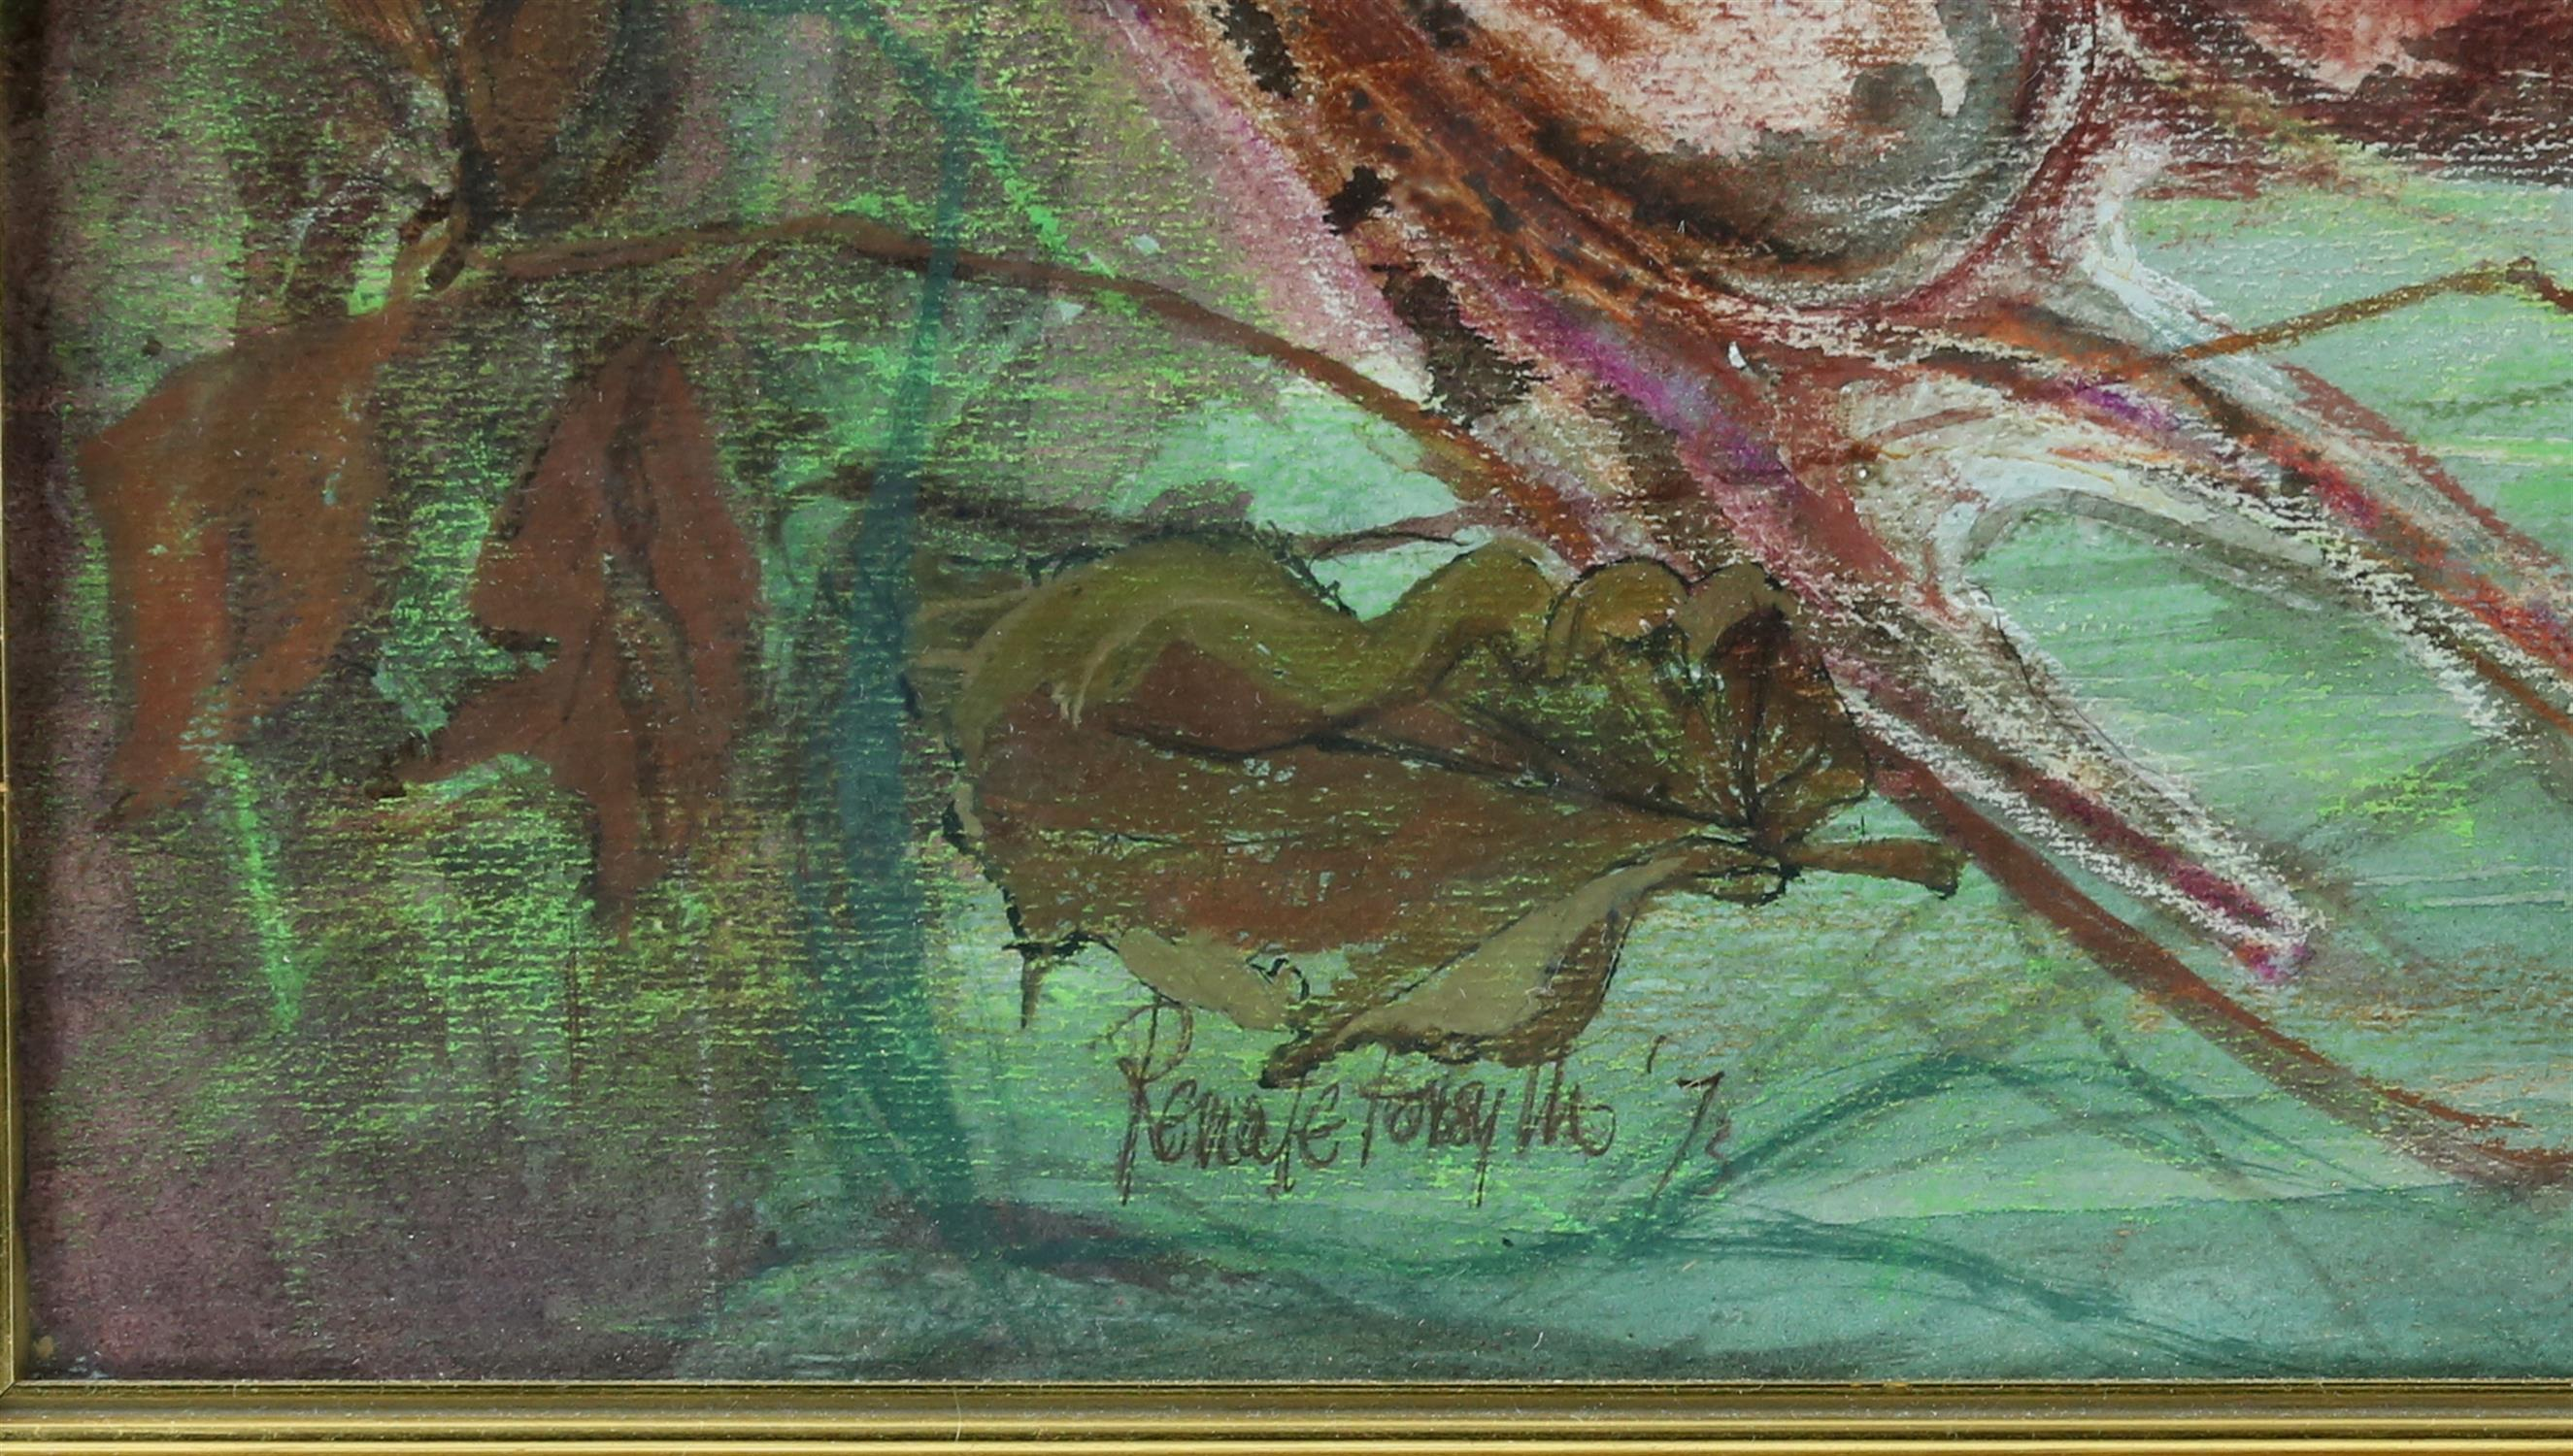 Renate Forsyth, 'Frogs', wax and wash on paper, signed and dated '72 lower left, 57 x 76cm, - Image 3 of 6